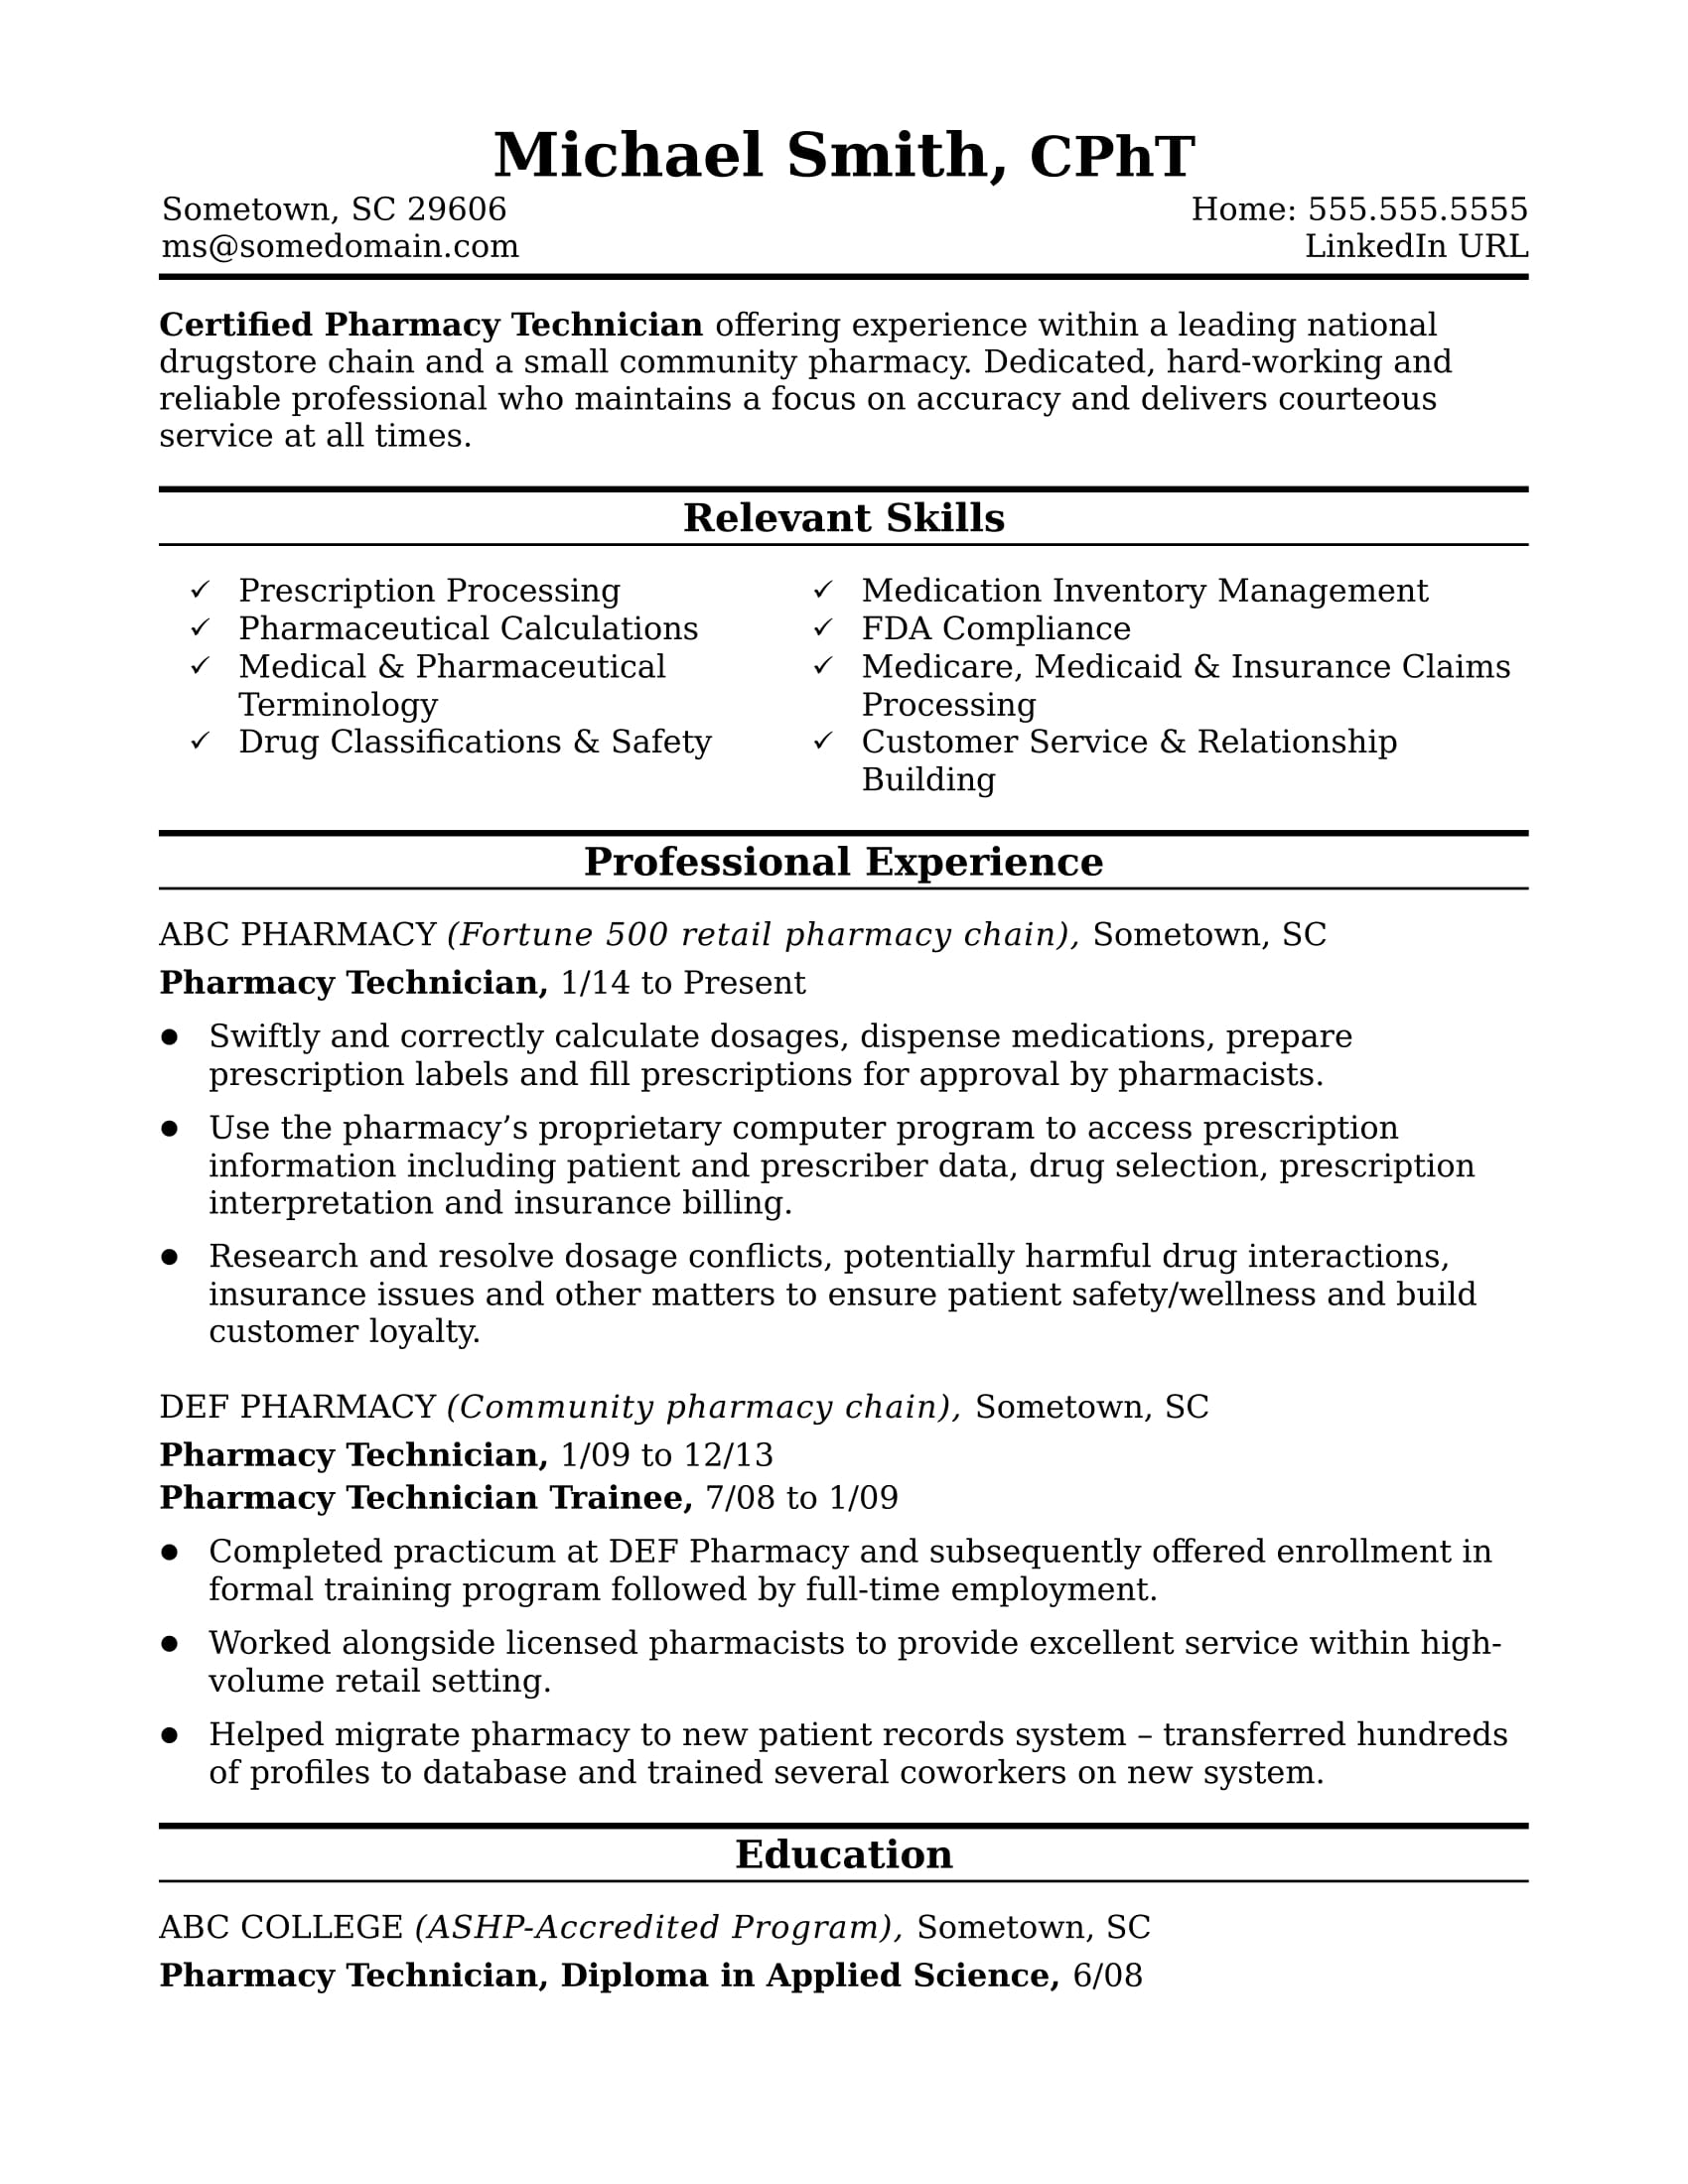 Merveilleux Sample Resume For A Pharmacy Technician